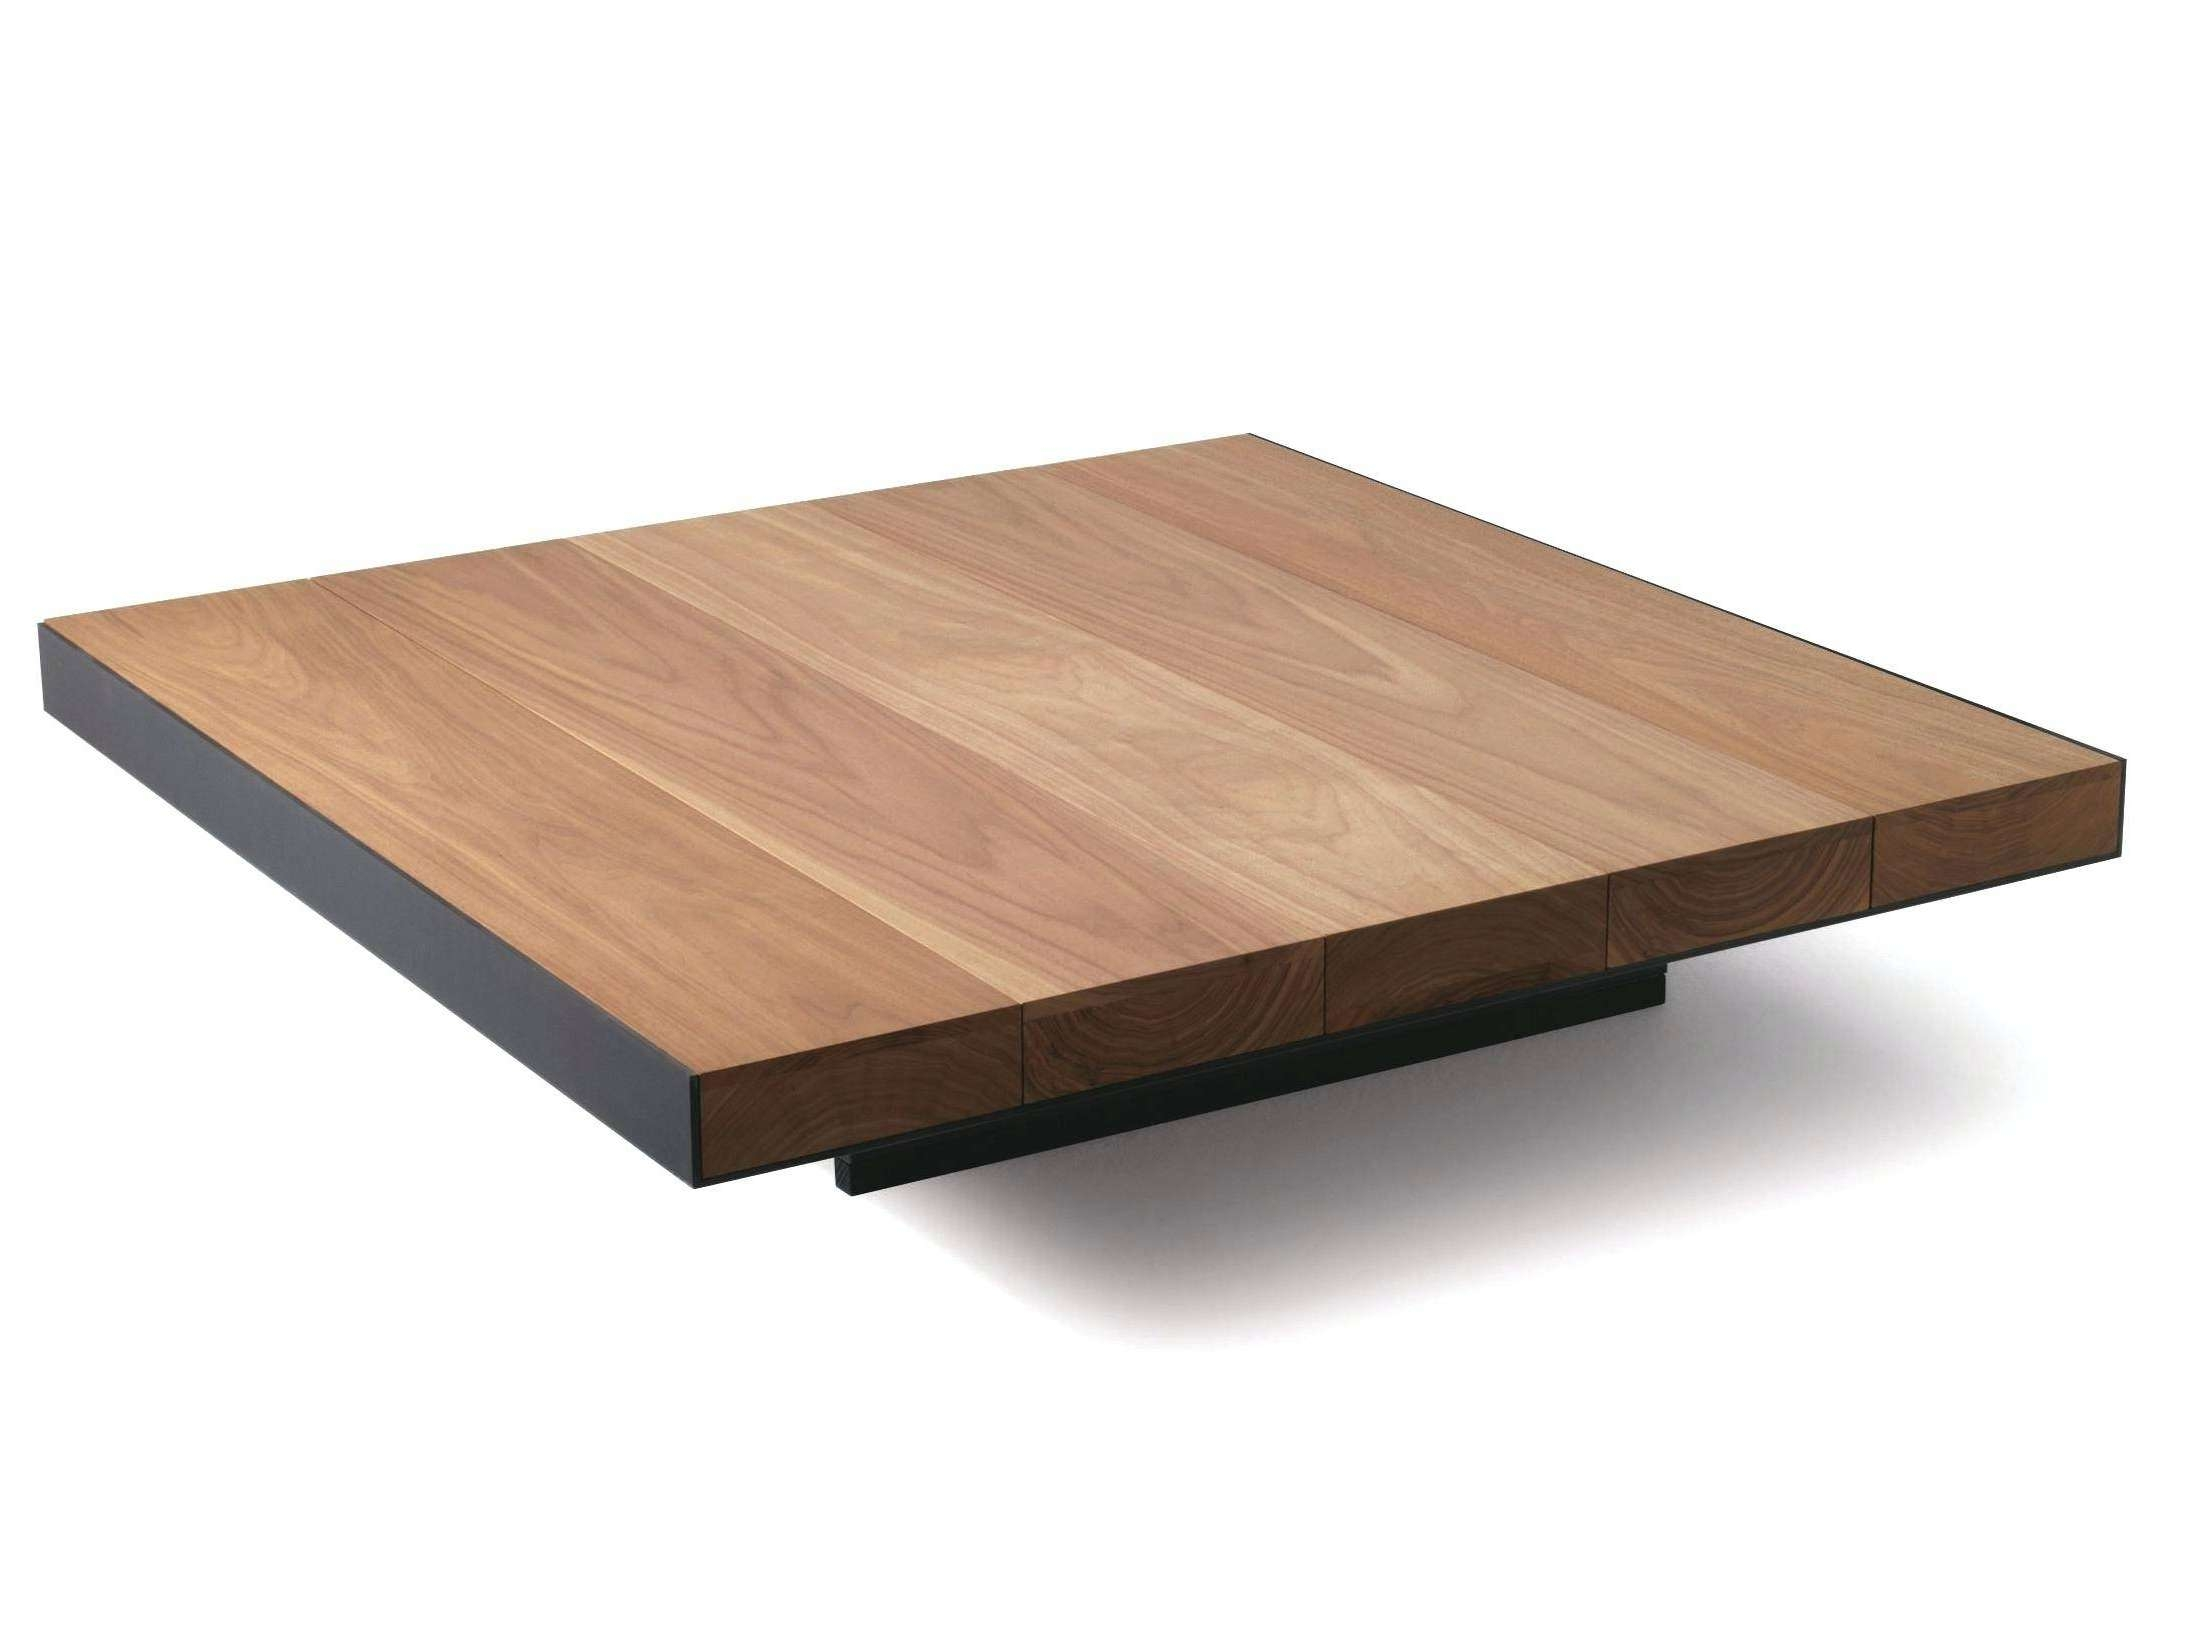 Newest Large Low Coffee Tables For Coffee Tables : Low Large Coffee Table Tables Marvelous Images (View 16 of 20)